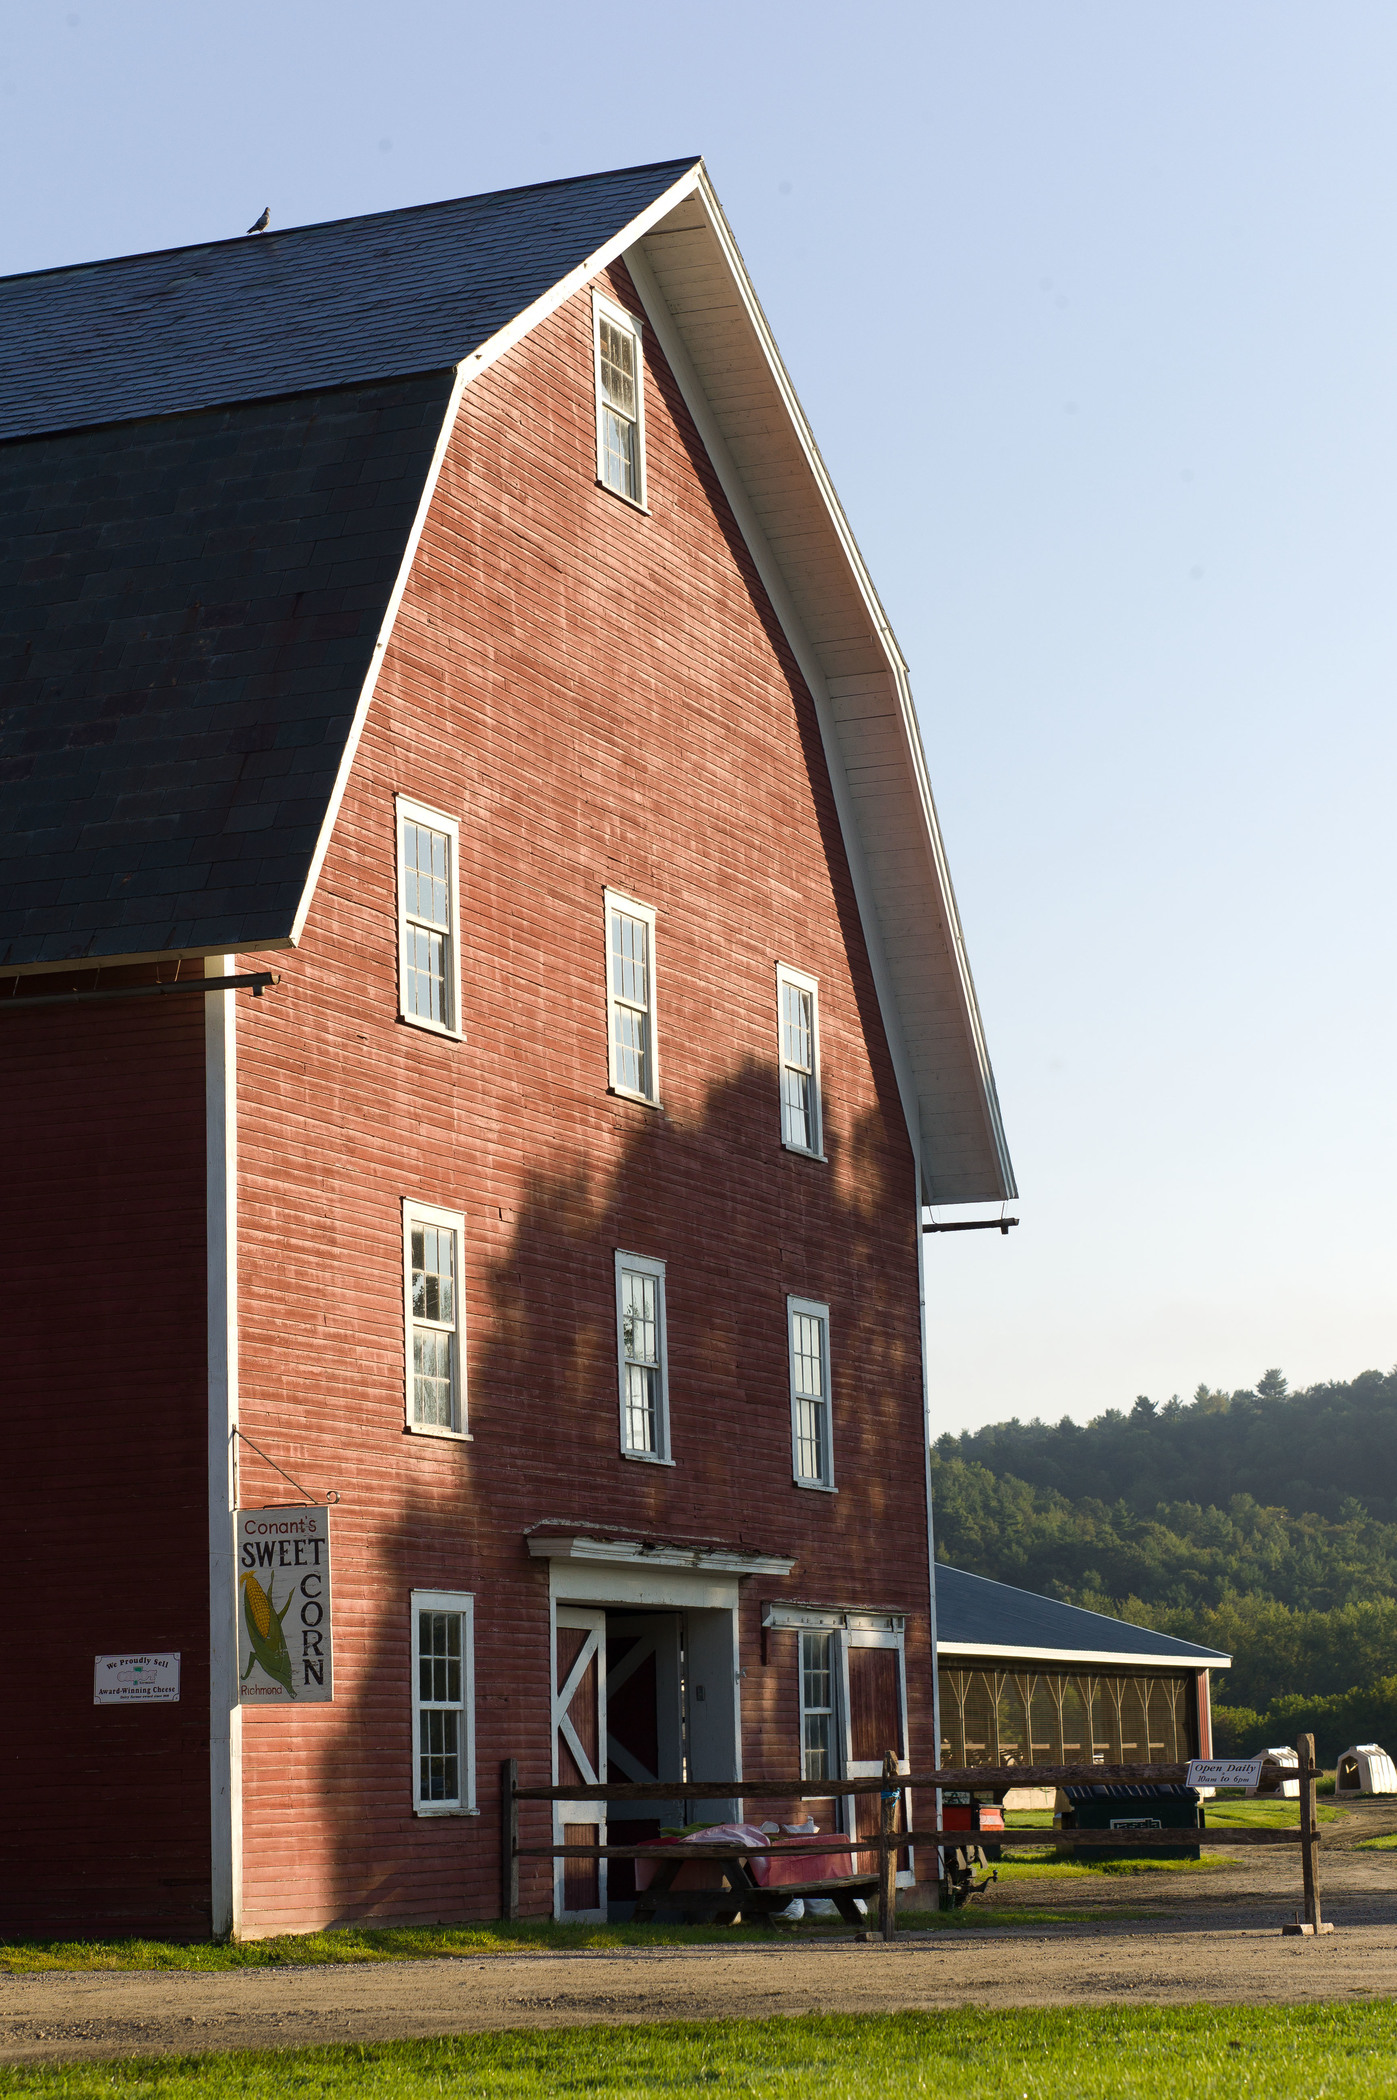 The old barn will celebrate its 100th birthday in Aug. 2015